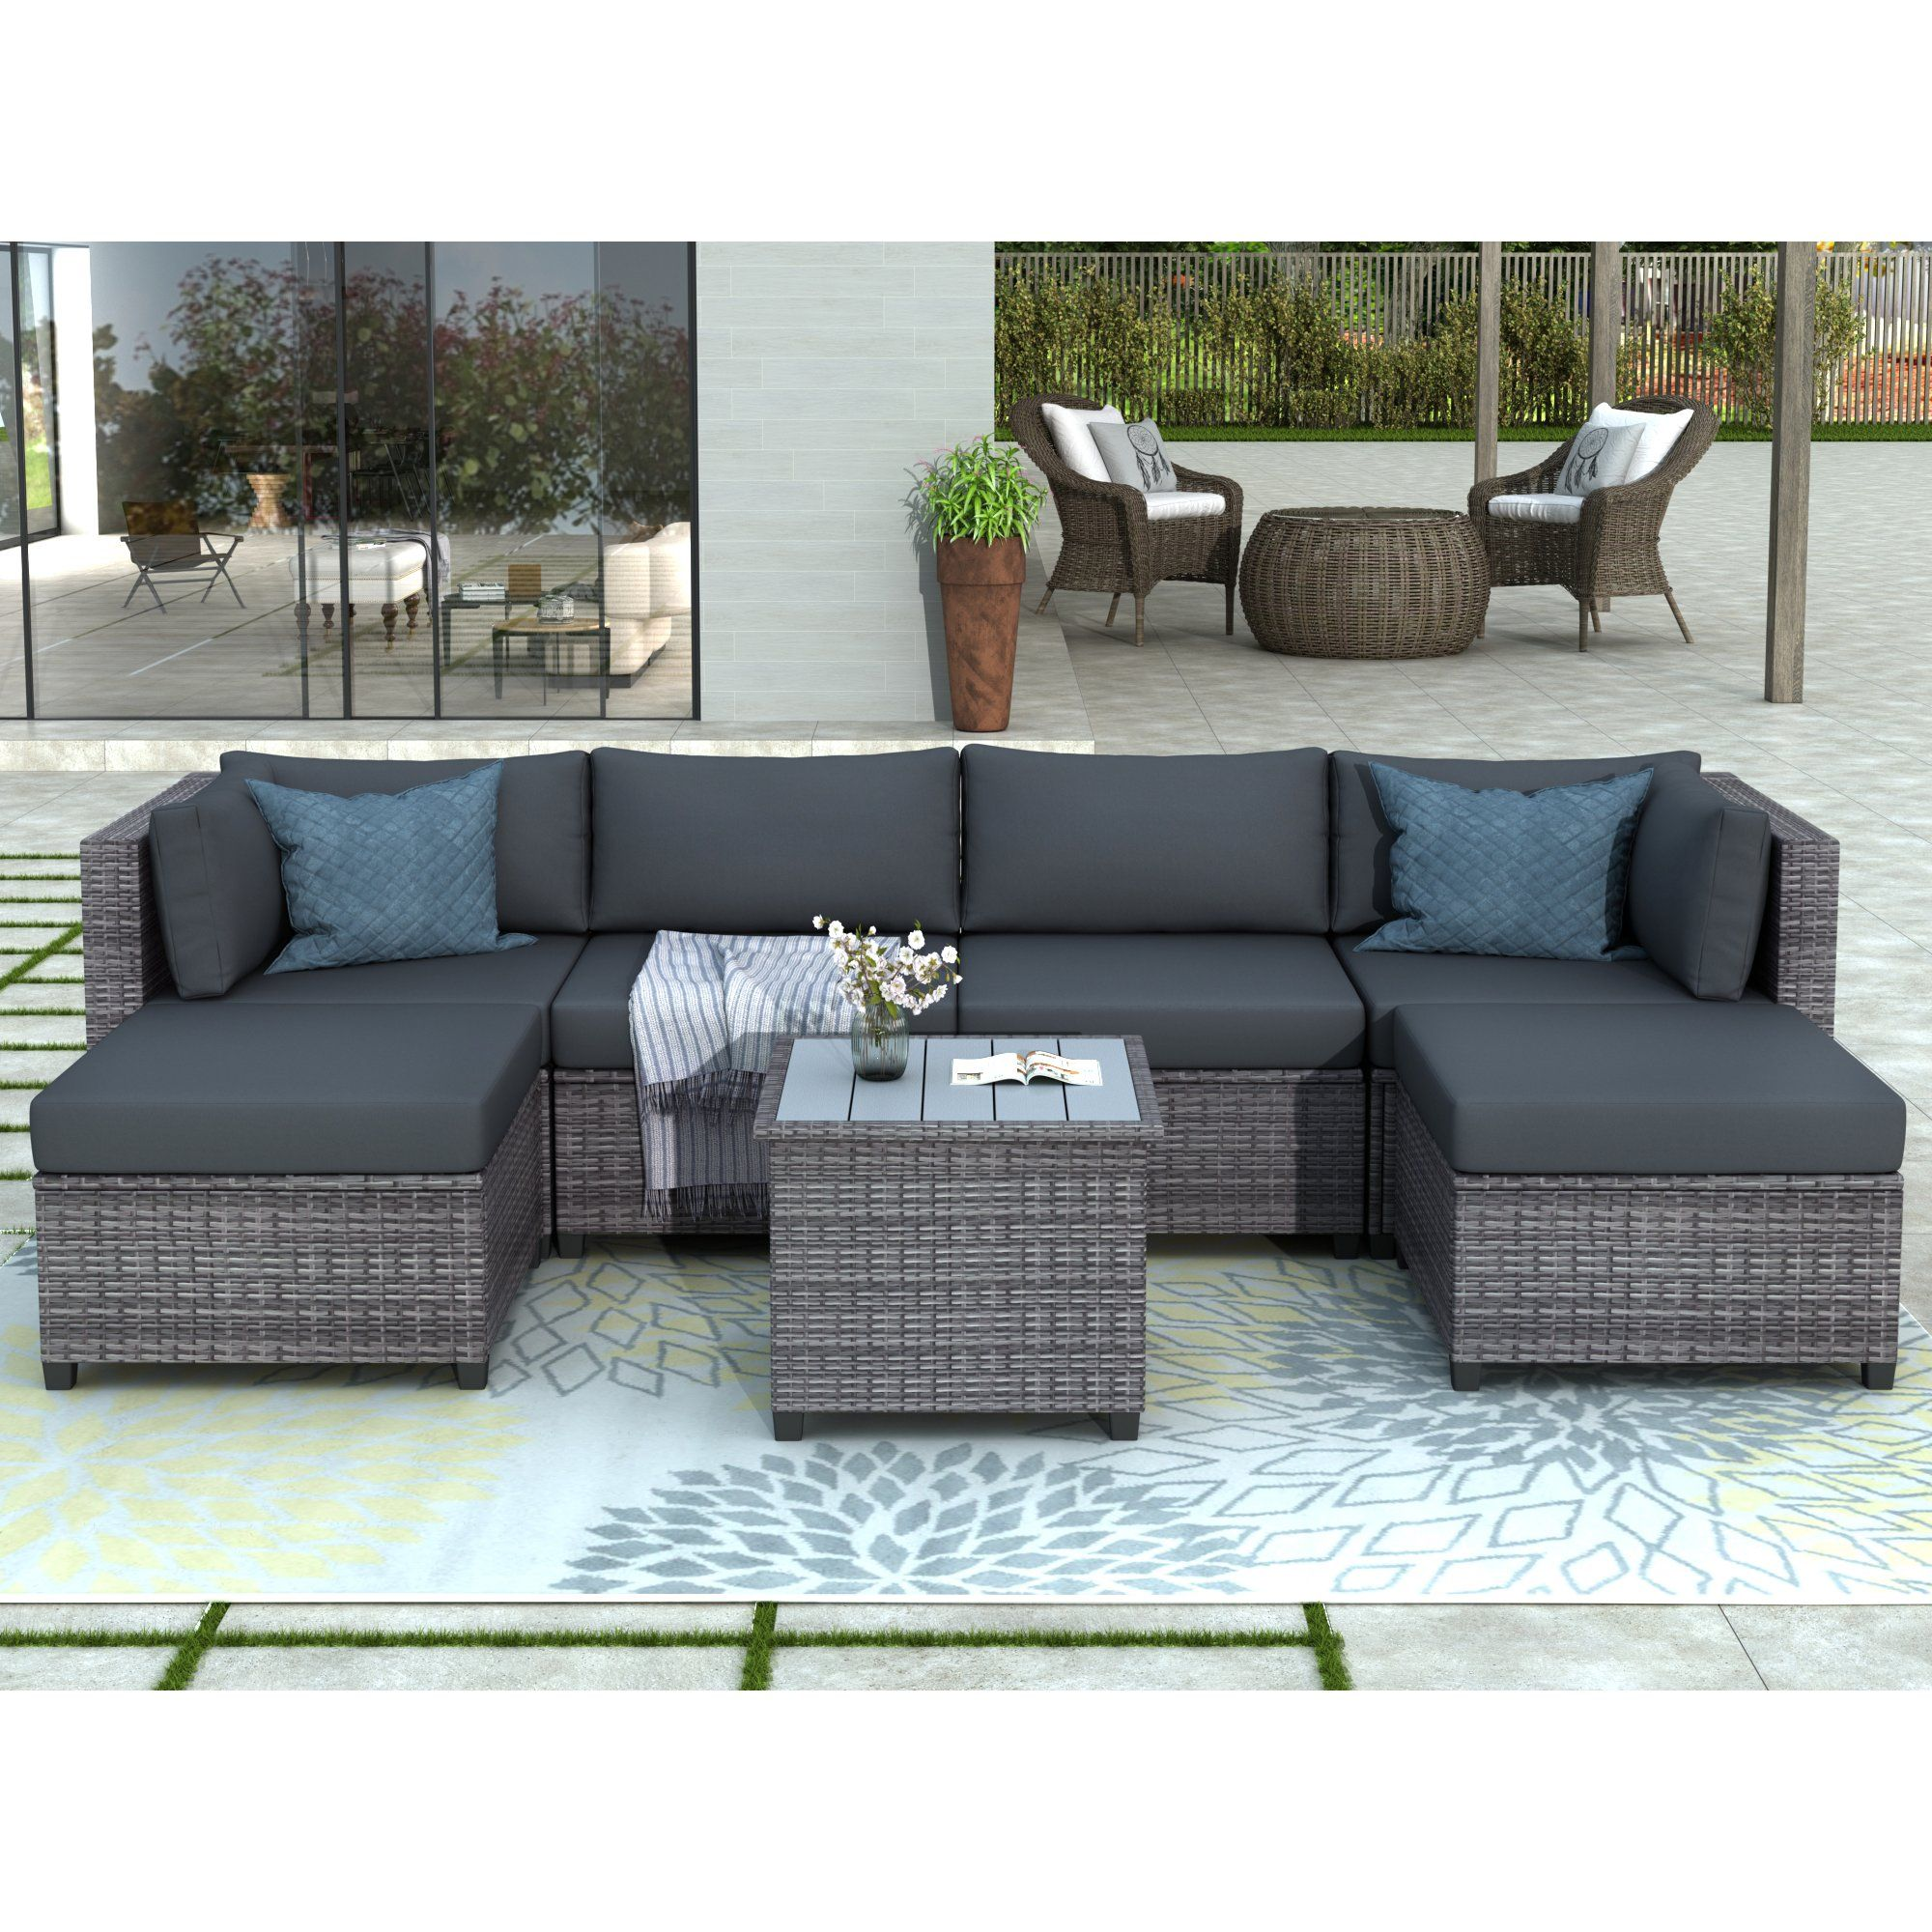 Clearance Outdoor Patio Sectional Sofa Sets Segmart Newest 7 Pieces Wicker Furniture Set With Seat Cushions Polywood Table Conversation Sets With 2 Ottoman In 2020 Backyard Furniture Wicker Outdoor Sectional Patio Sectional